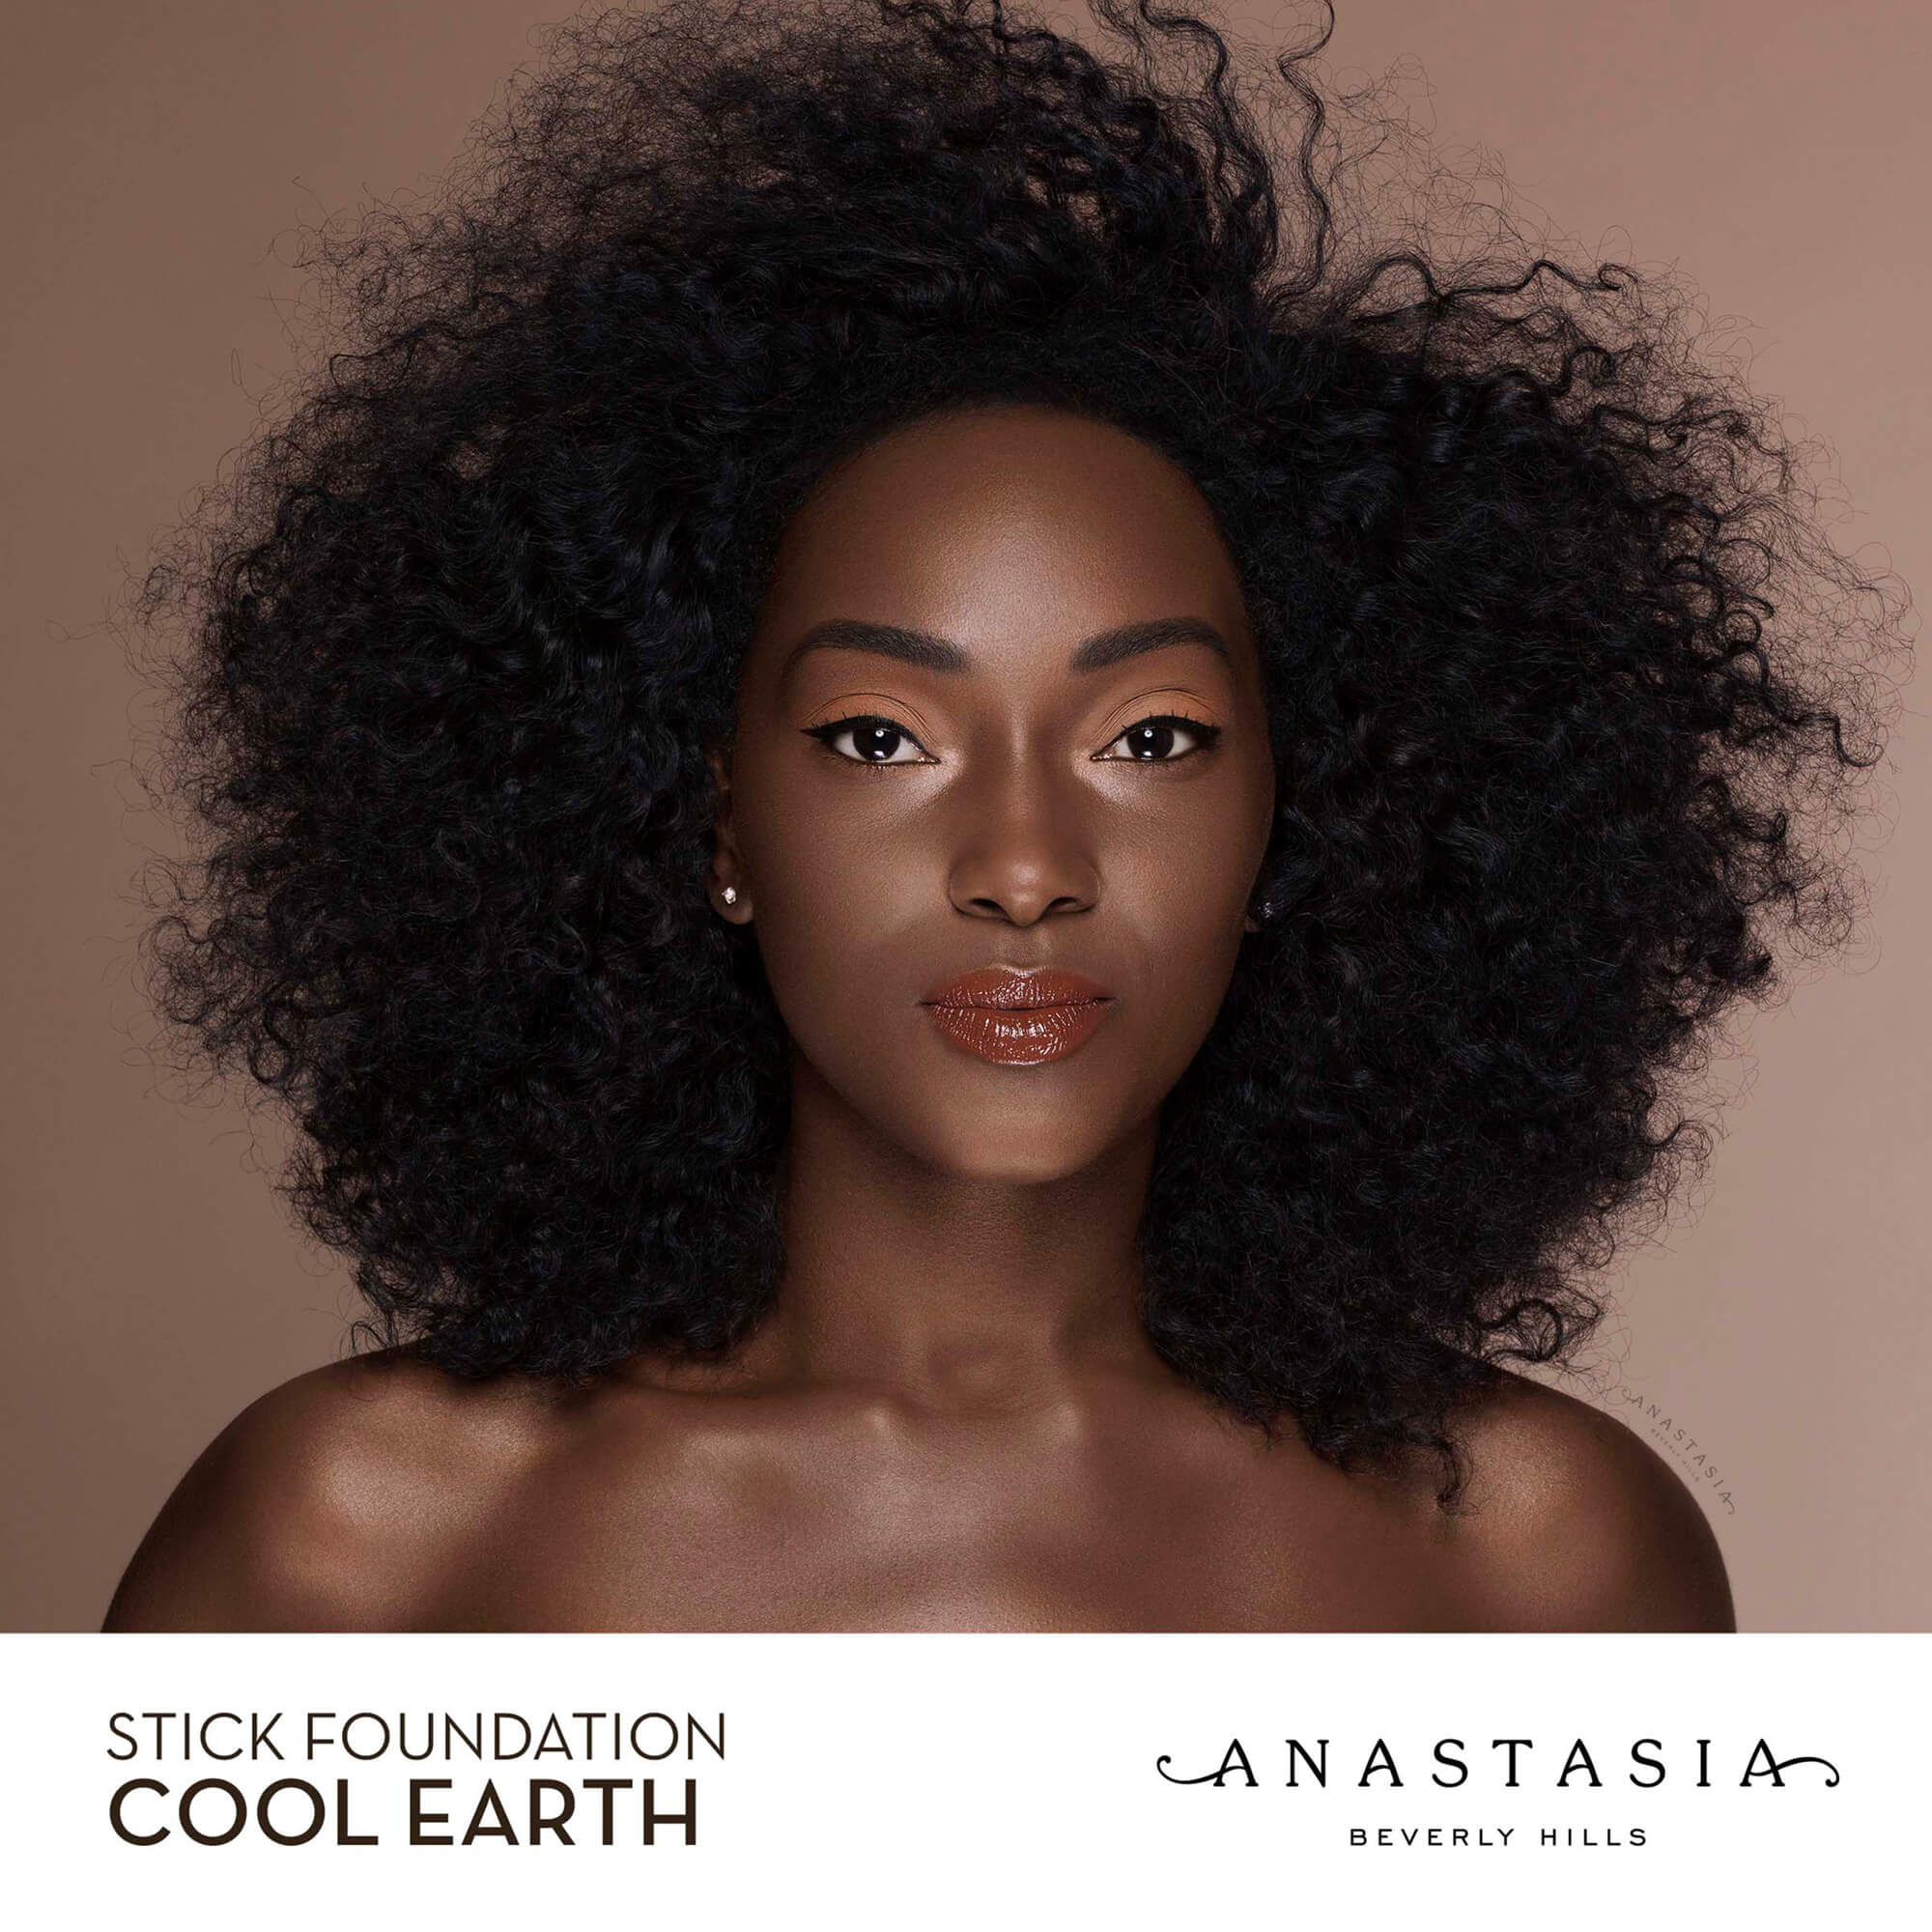 Stick Foundation - Cool Earth